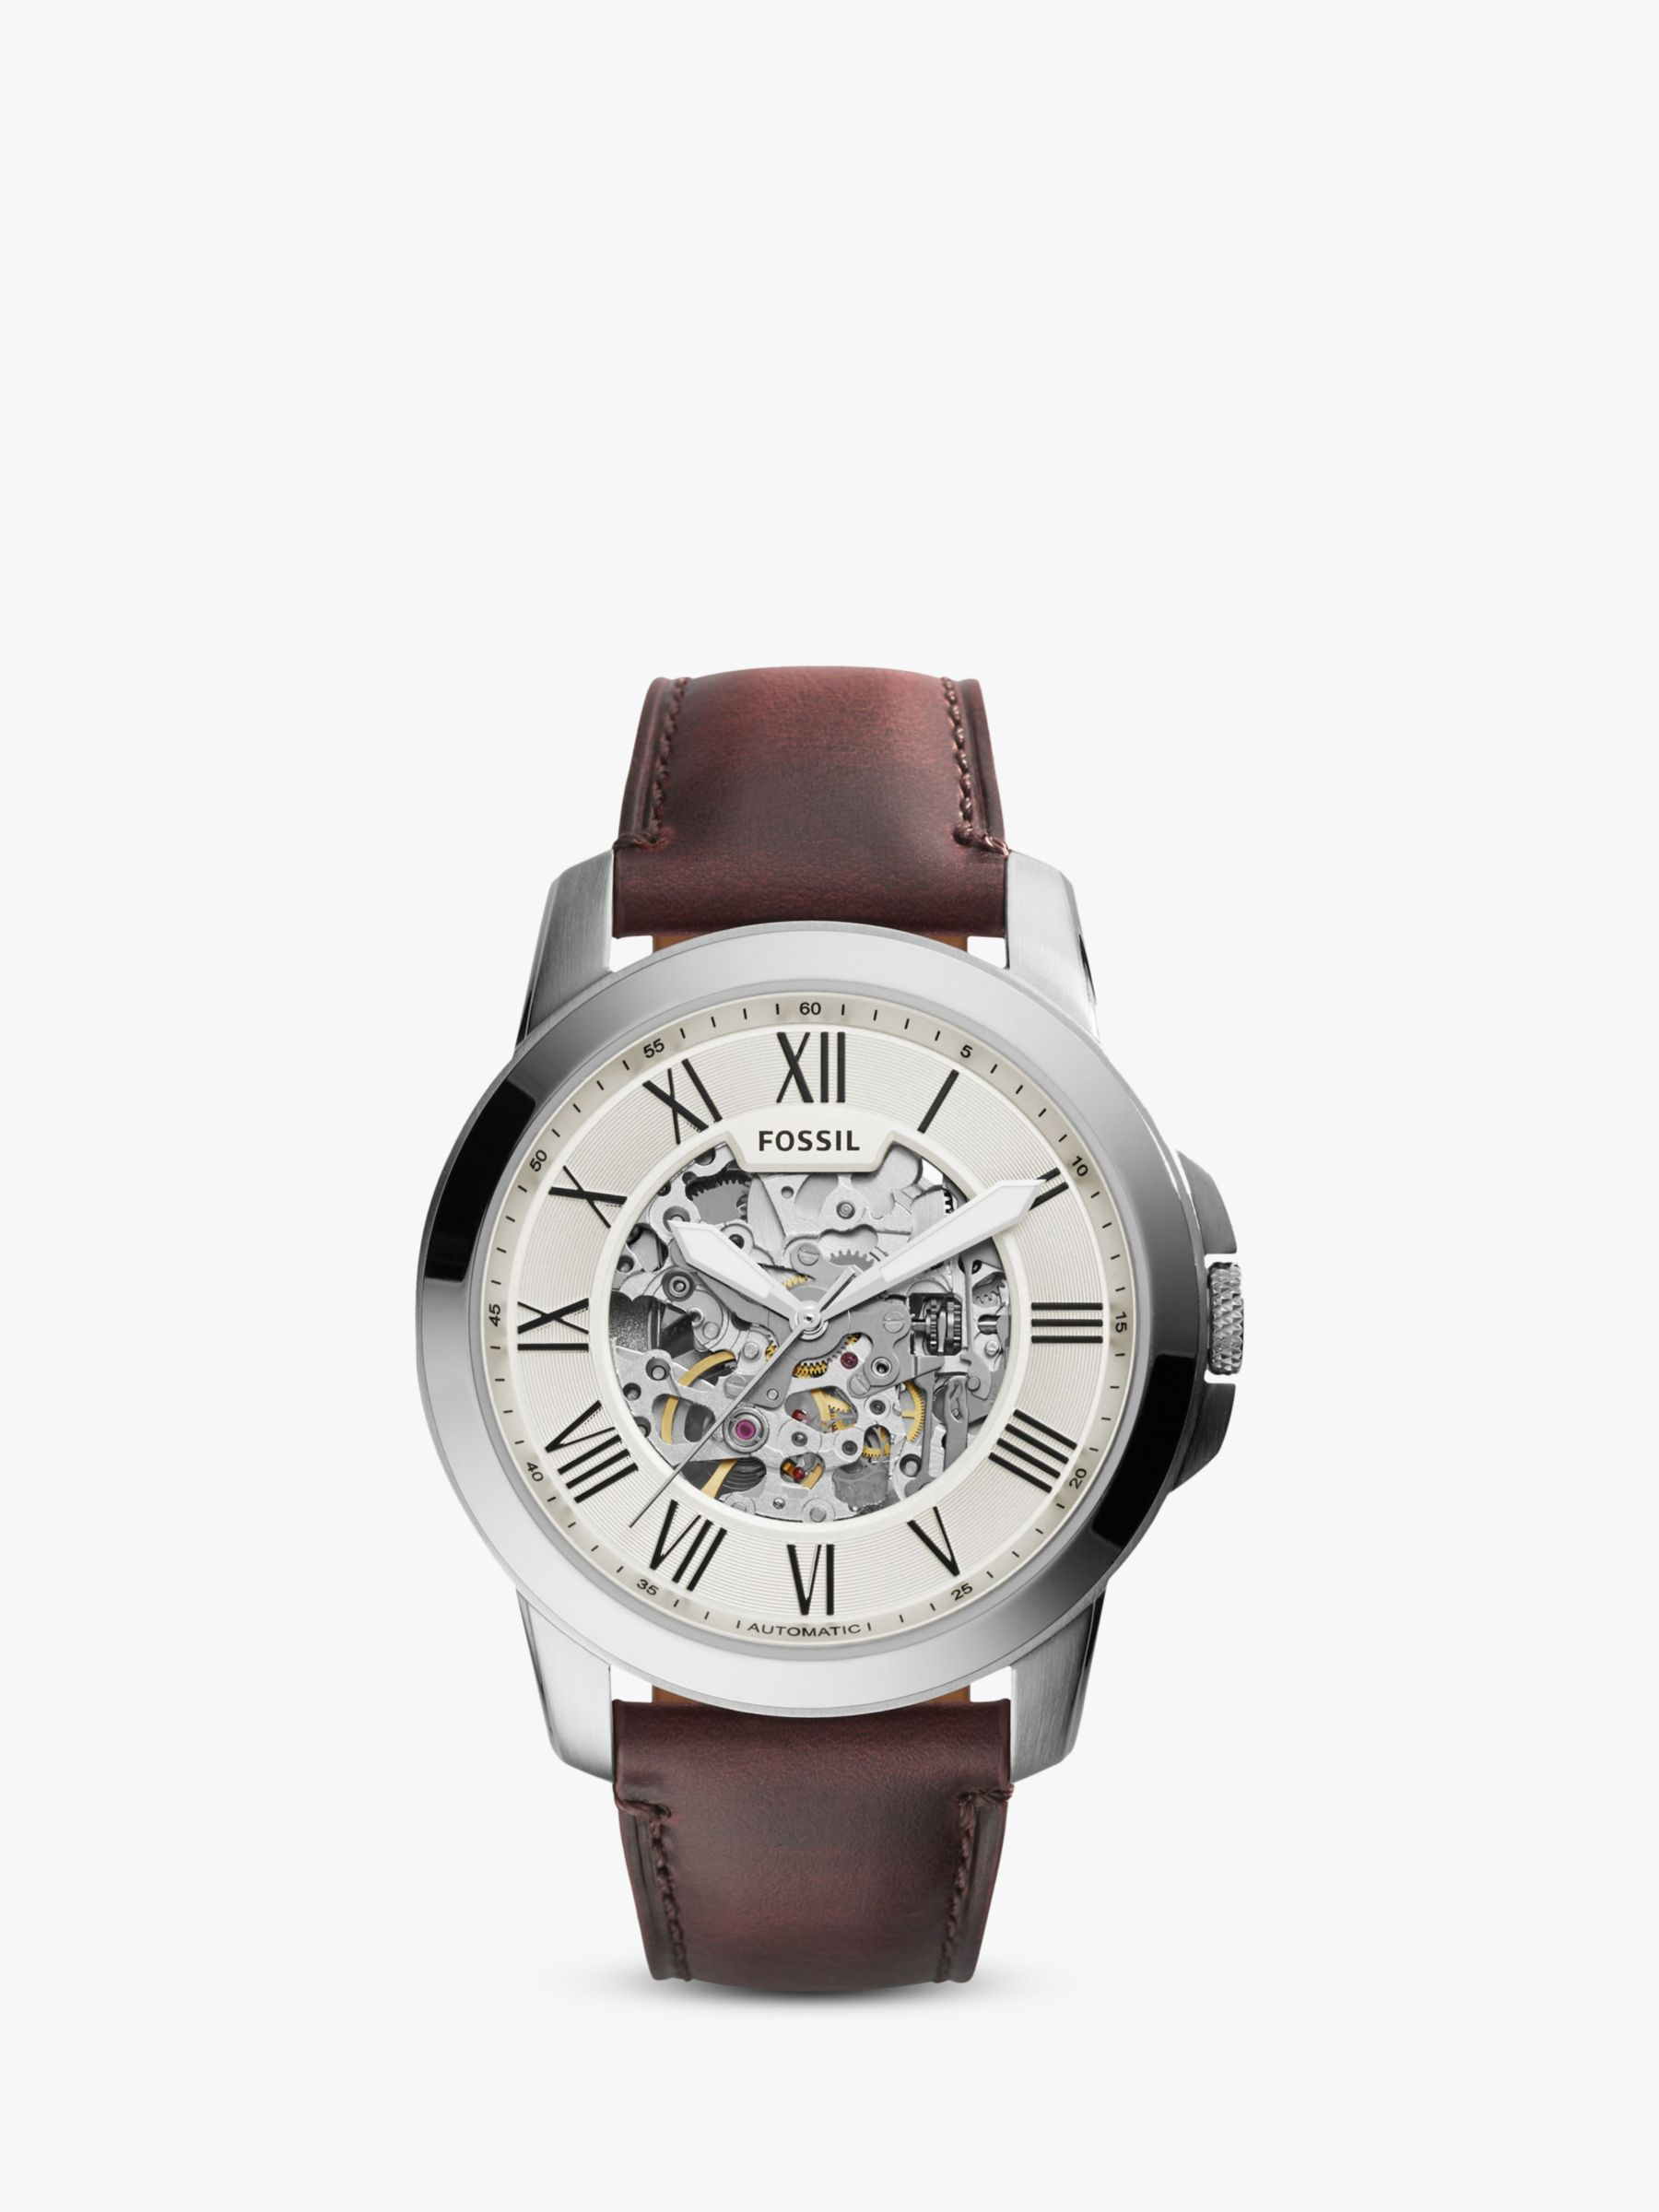 Fossil Fossil ME3099 Men's Grant Skeleton Automatic Leather Strap Watch, Brown/White